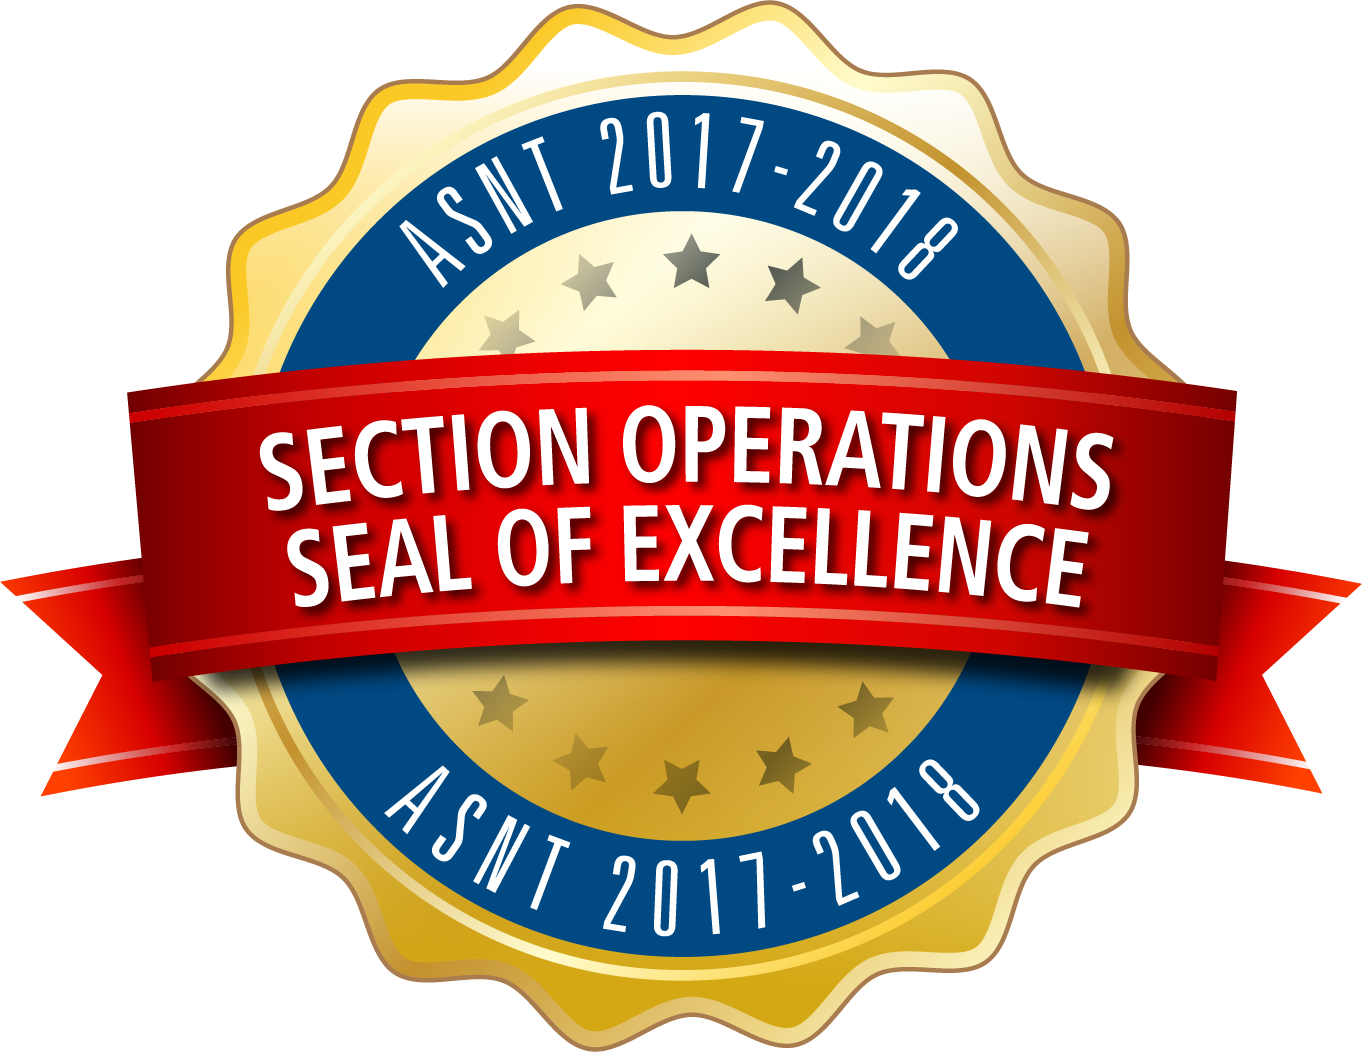 [Seal of Excellance 2017-2018]